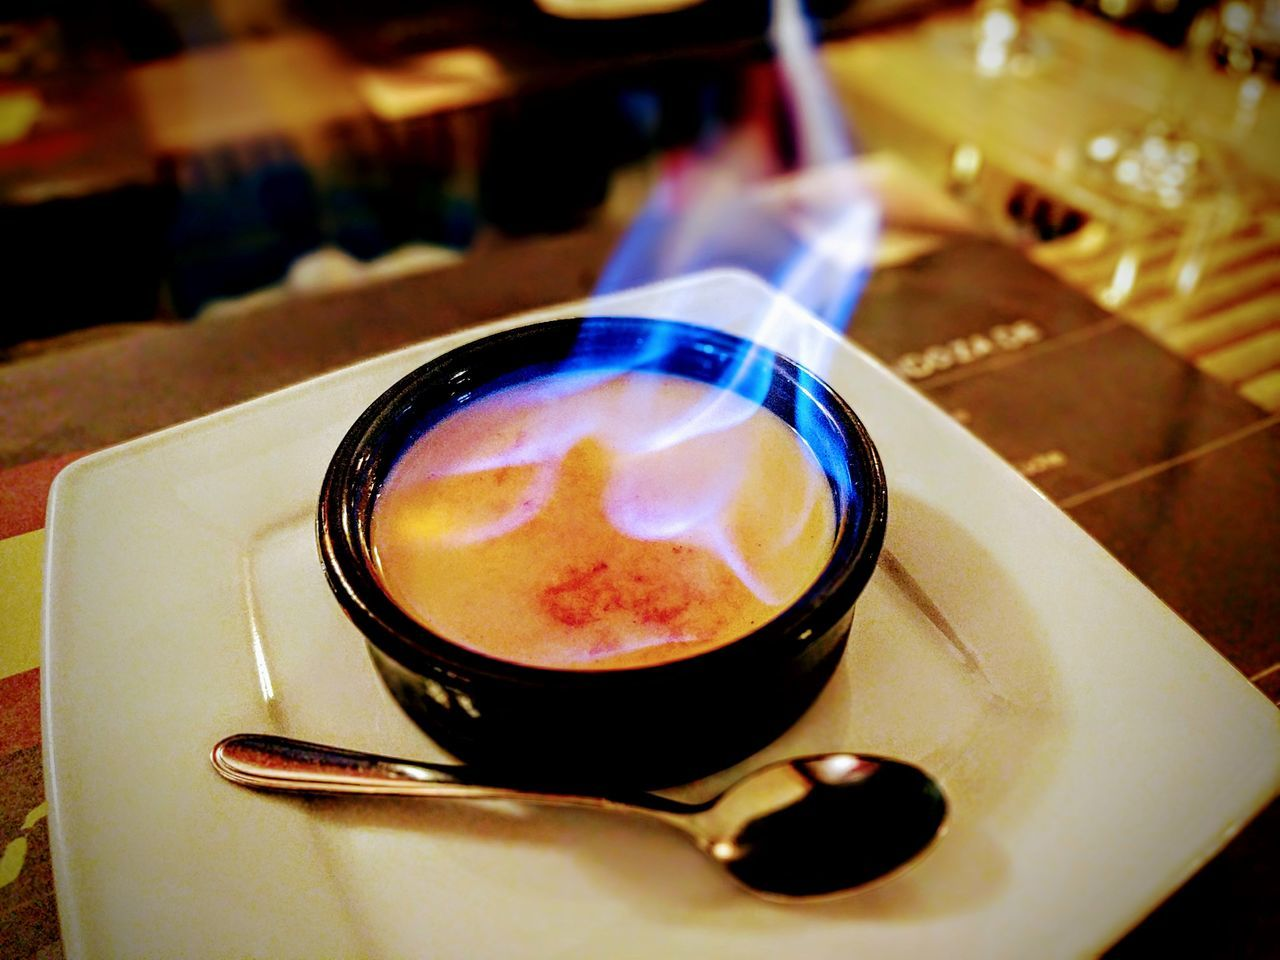 Creme Catalan Desert Italian Food And Drink Close-up Fire On Fire 😚 Teampixel